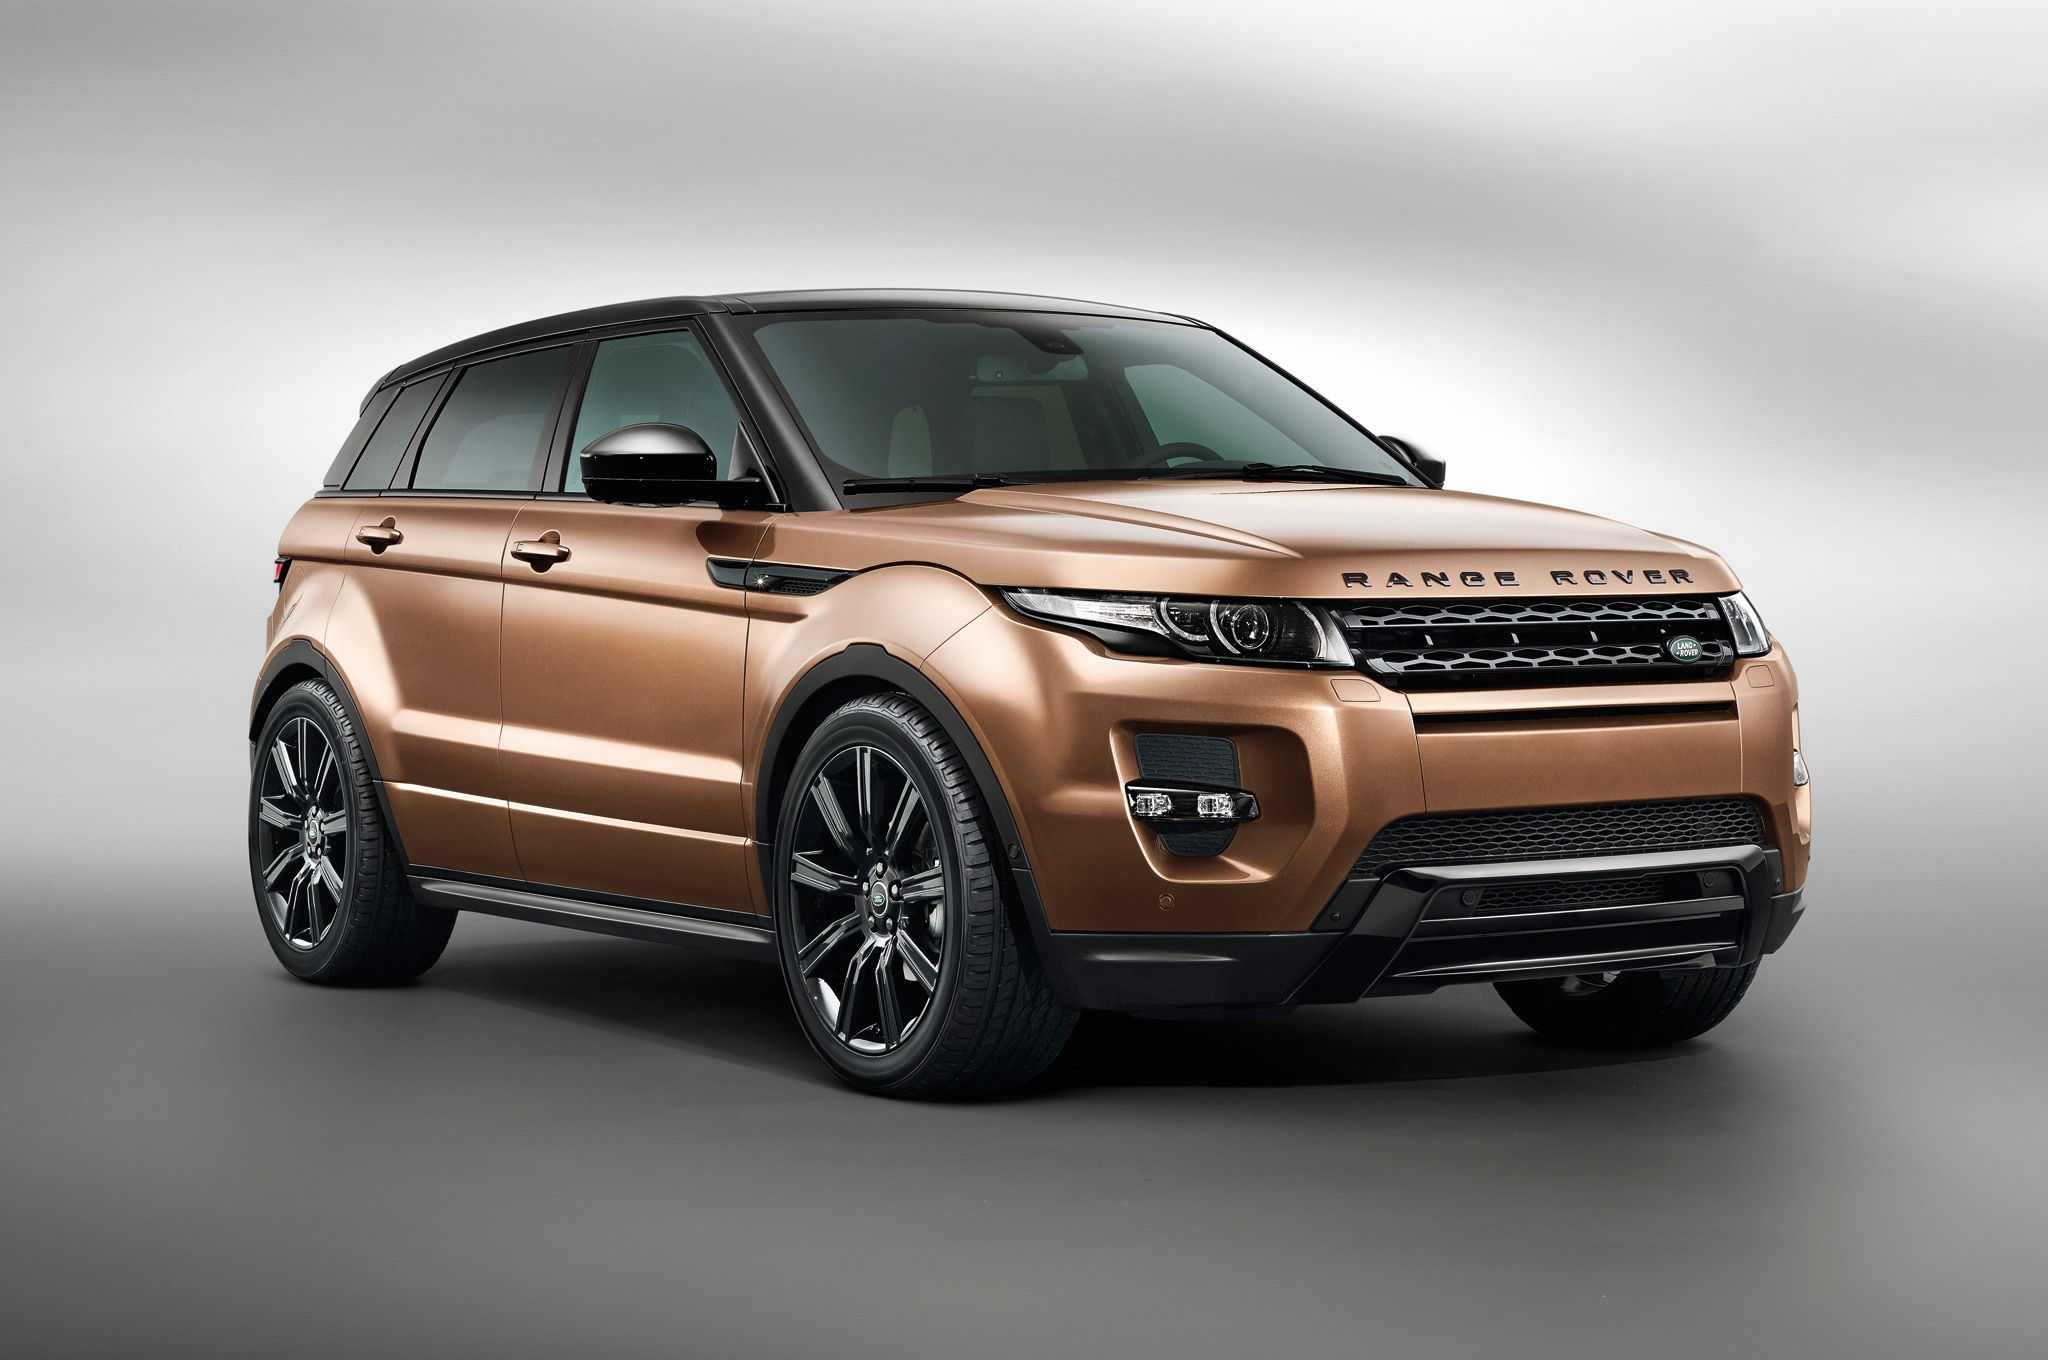 2014 Land Rover Range Rover Evoque: Around The Block